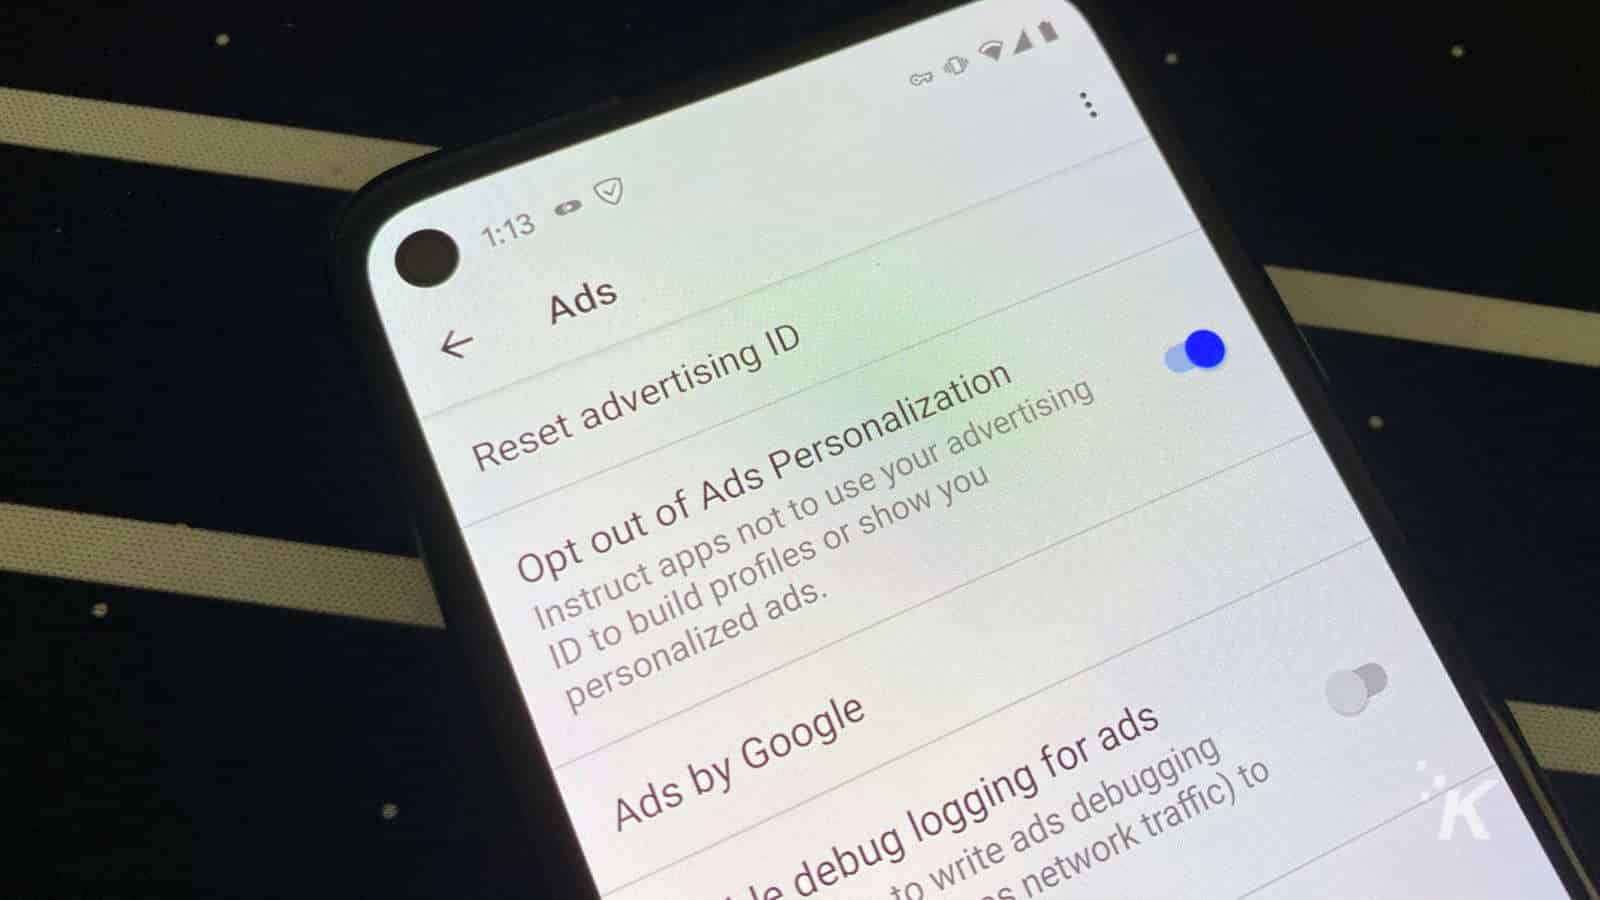 android opt out of ads personalization